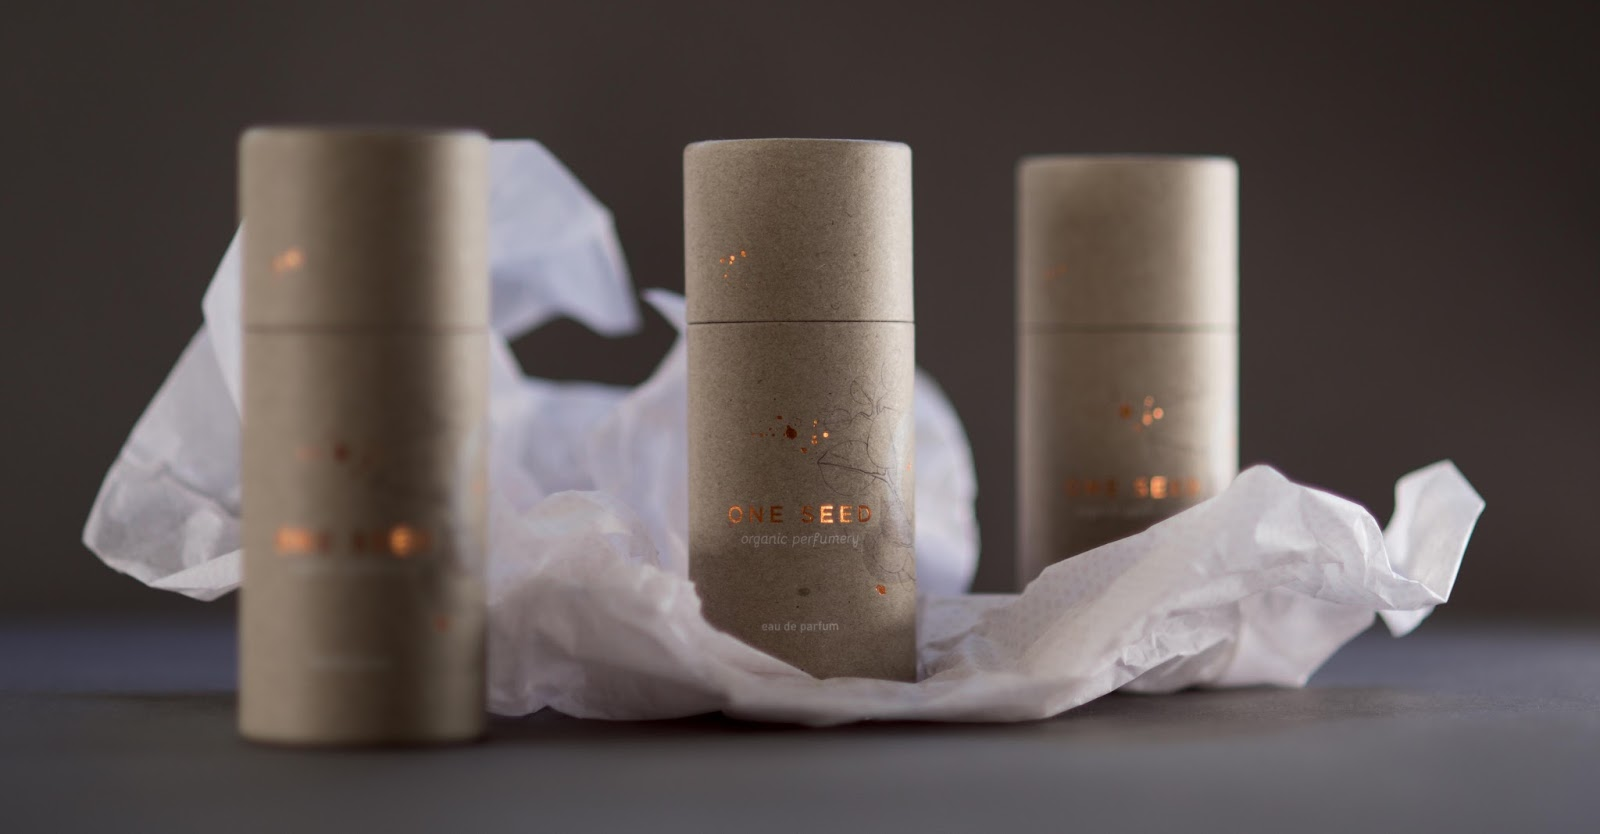 One Seed Organic Perfume on Packaging of the World